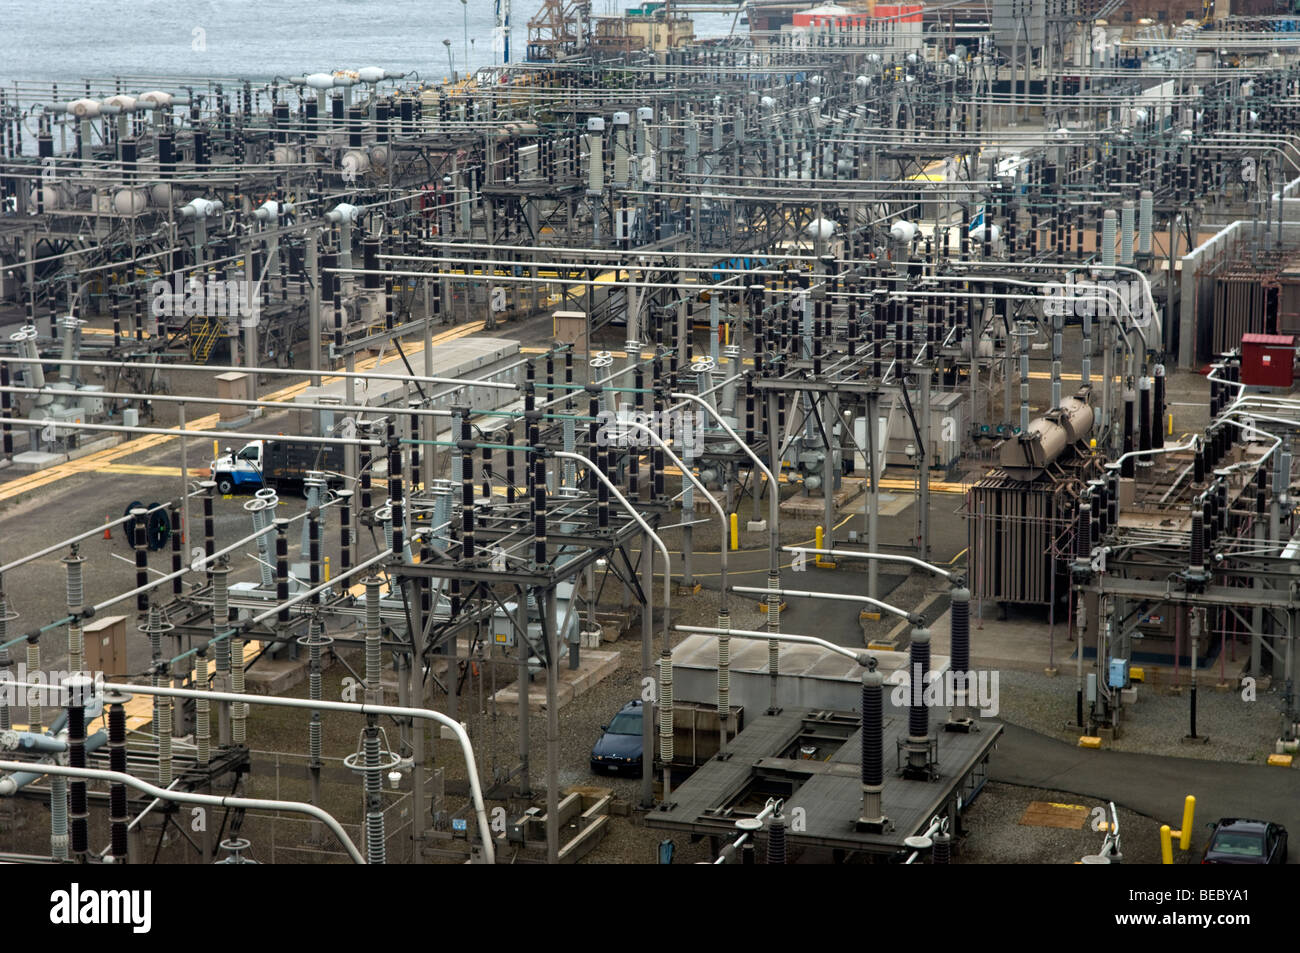 A Con Edison power plant and distribution center in the Brooklyn neighborhood of Dumbo in New York - Stock Image